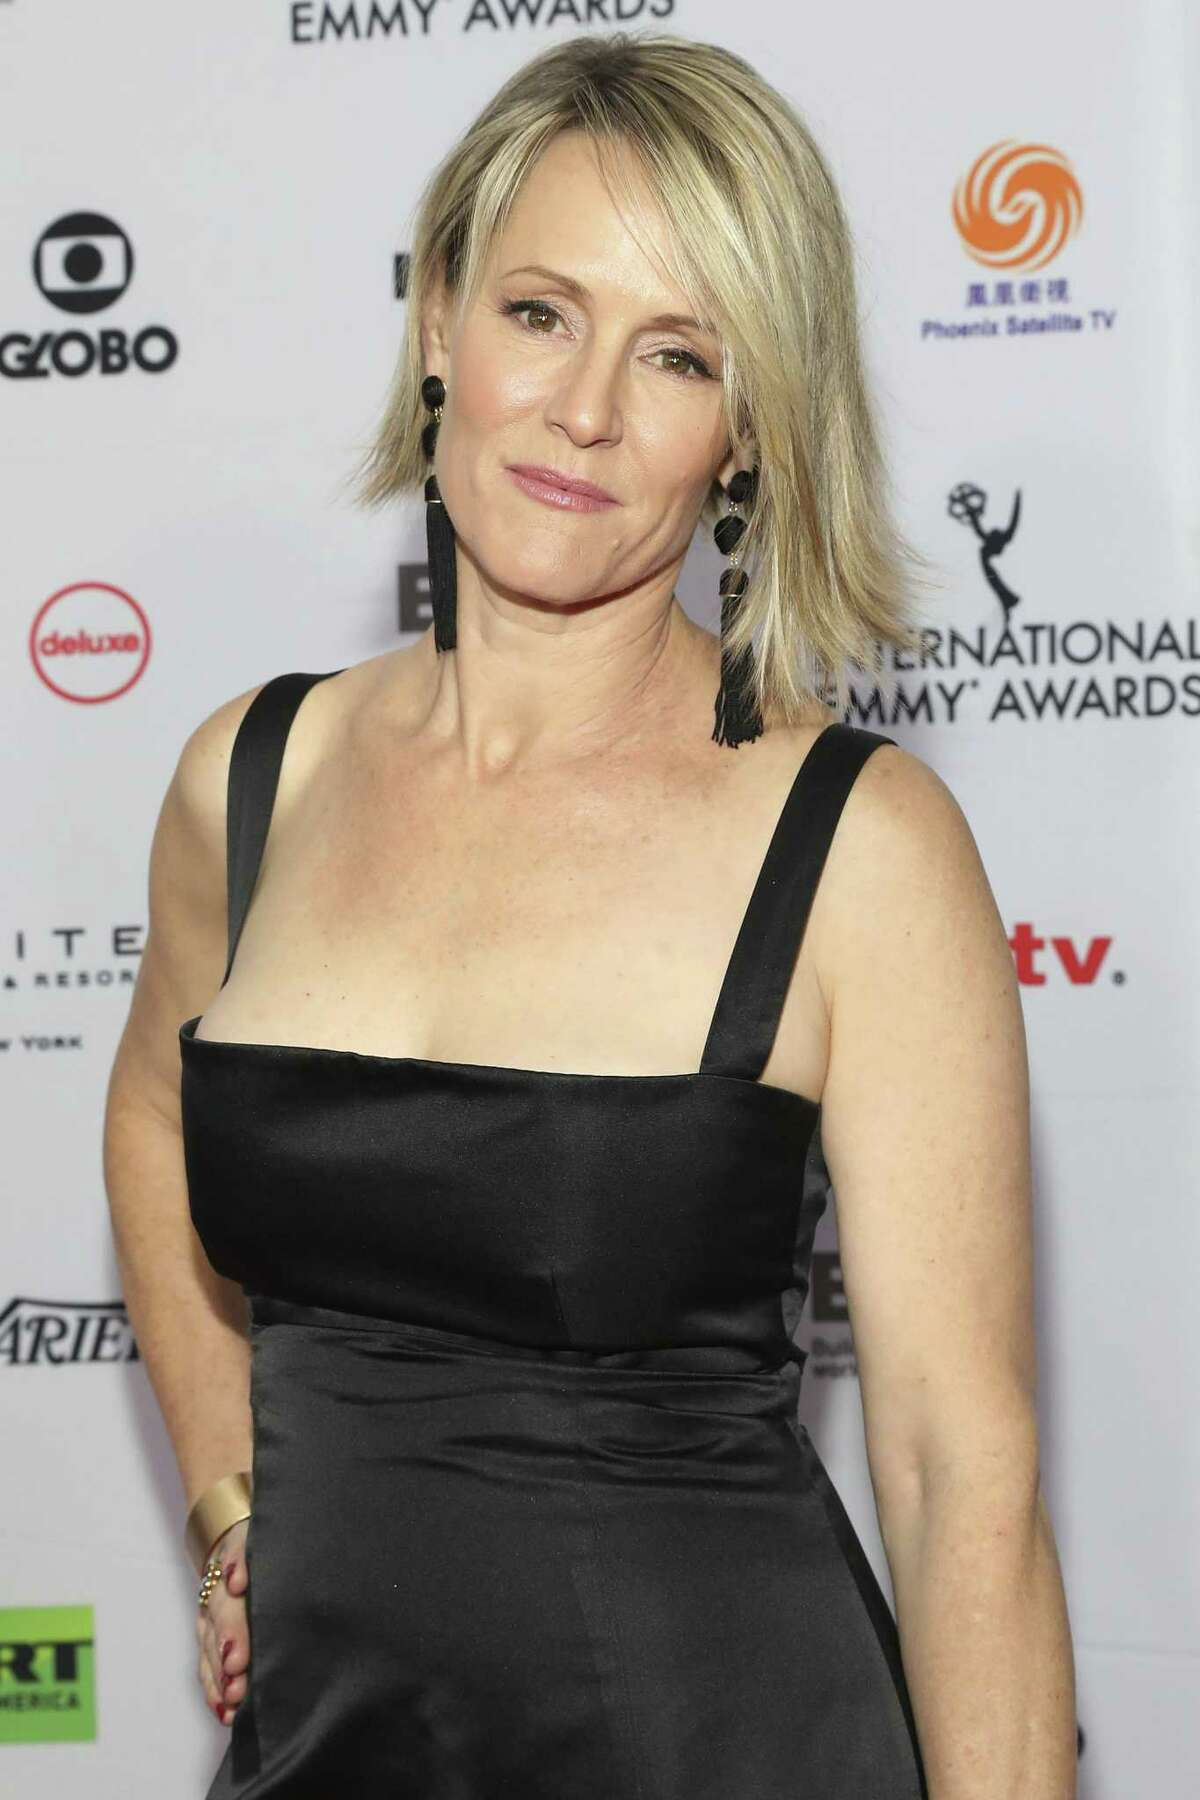 Mary Stuart Masterson called Peter Masterson